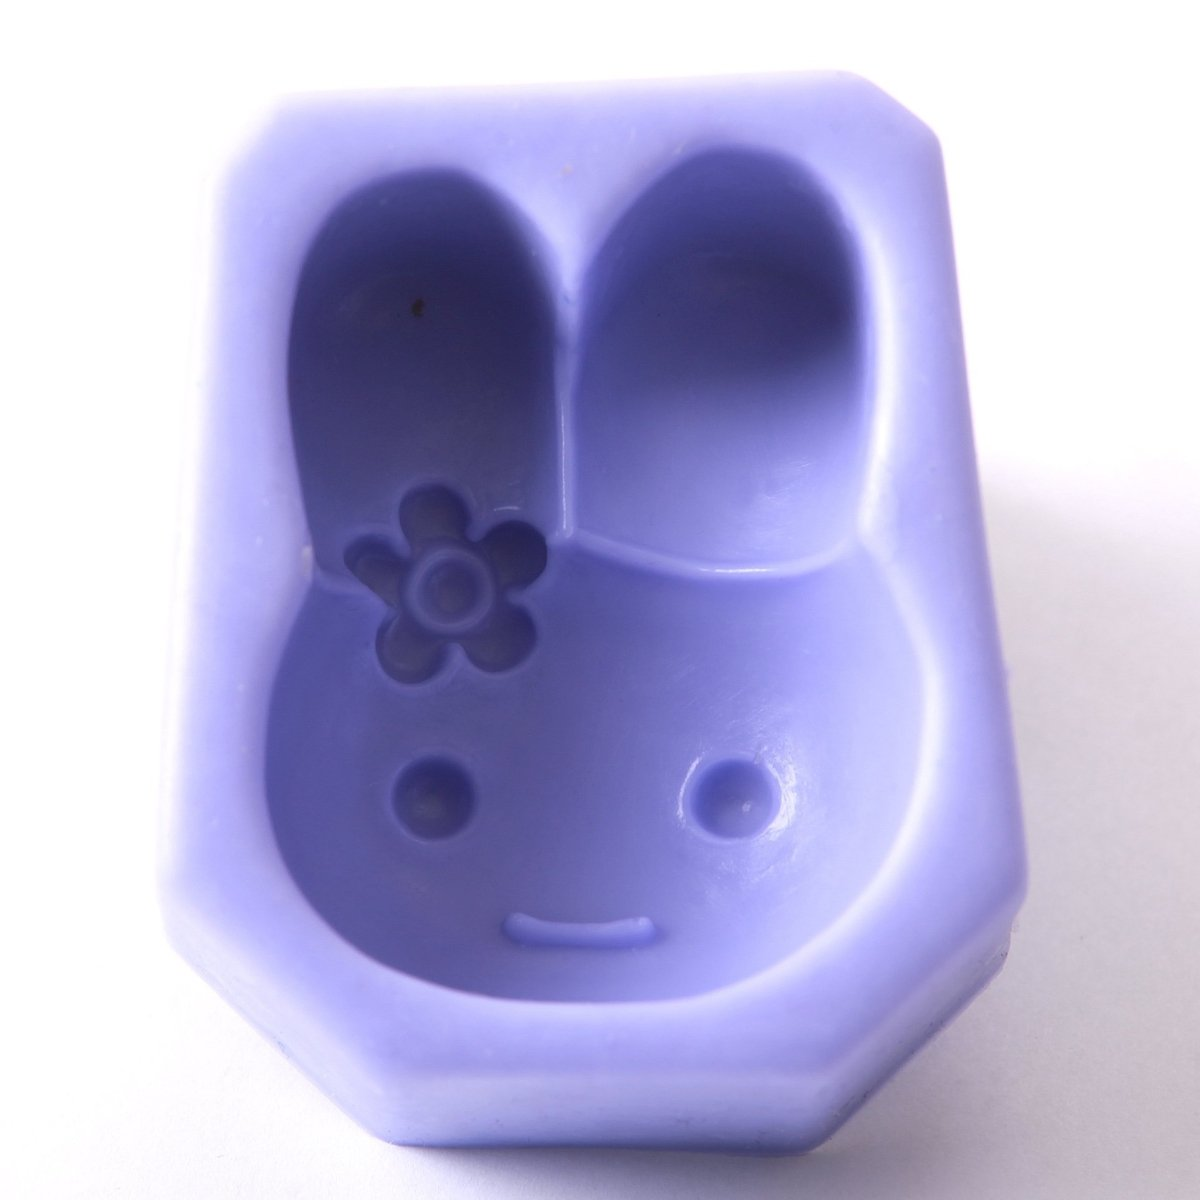 Bunny Silicone Soap Mould R0008 - Mystic Moments UK